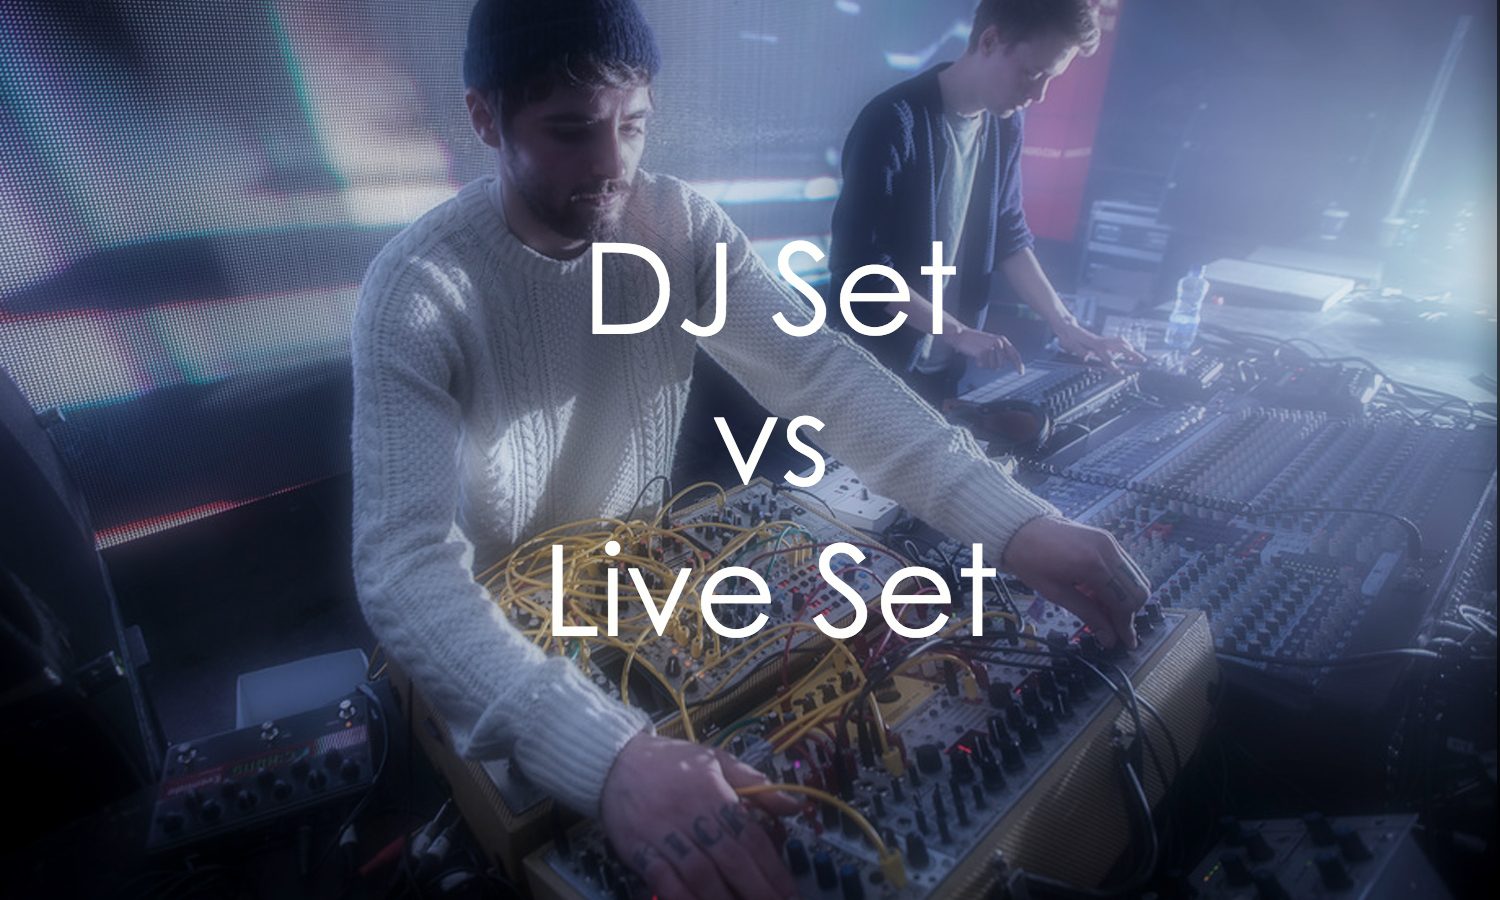 dj set vs live set